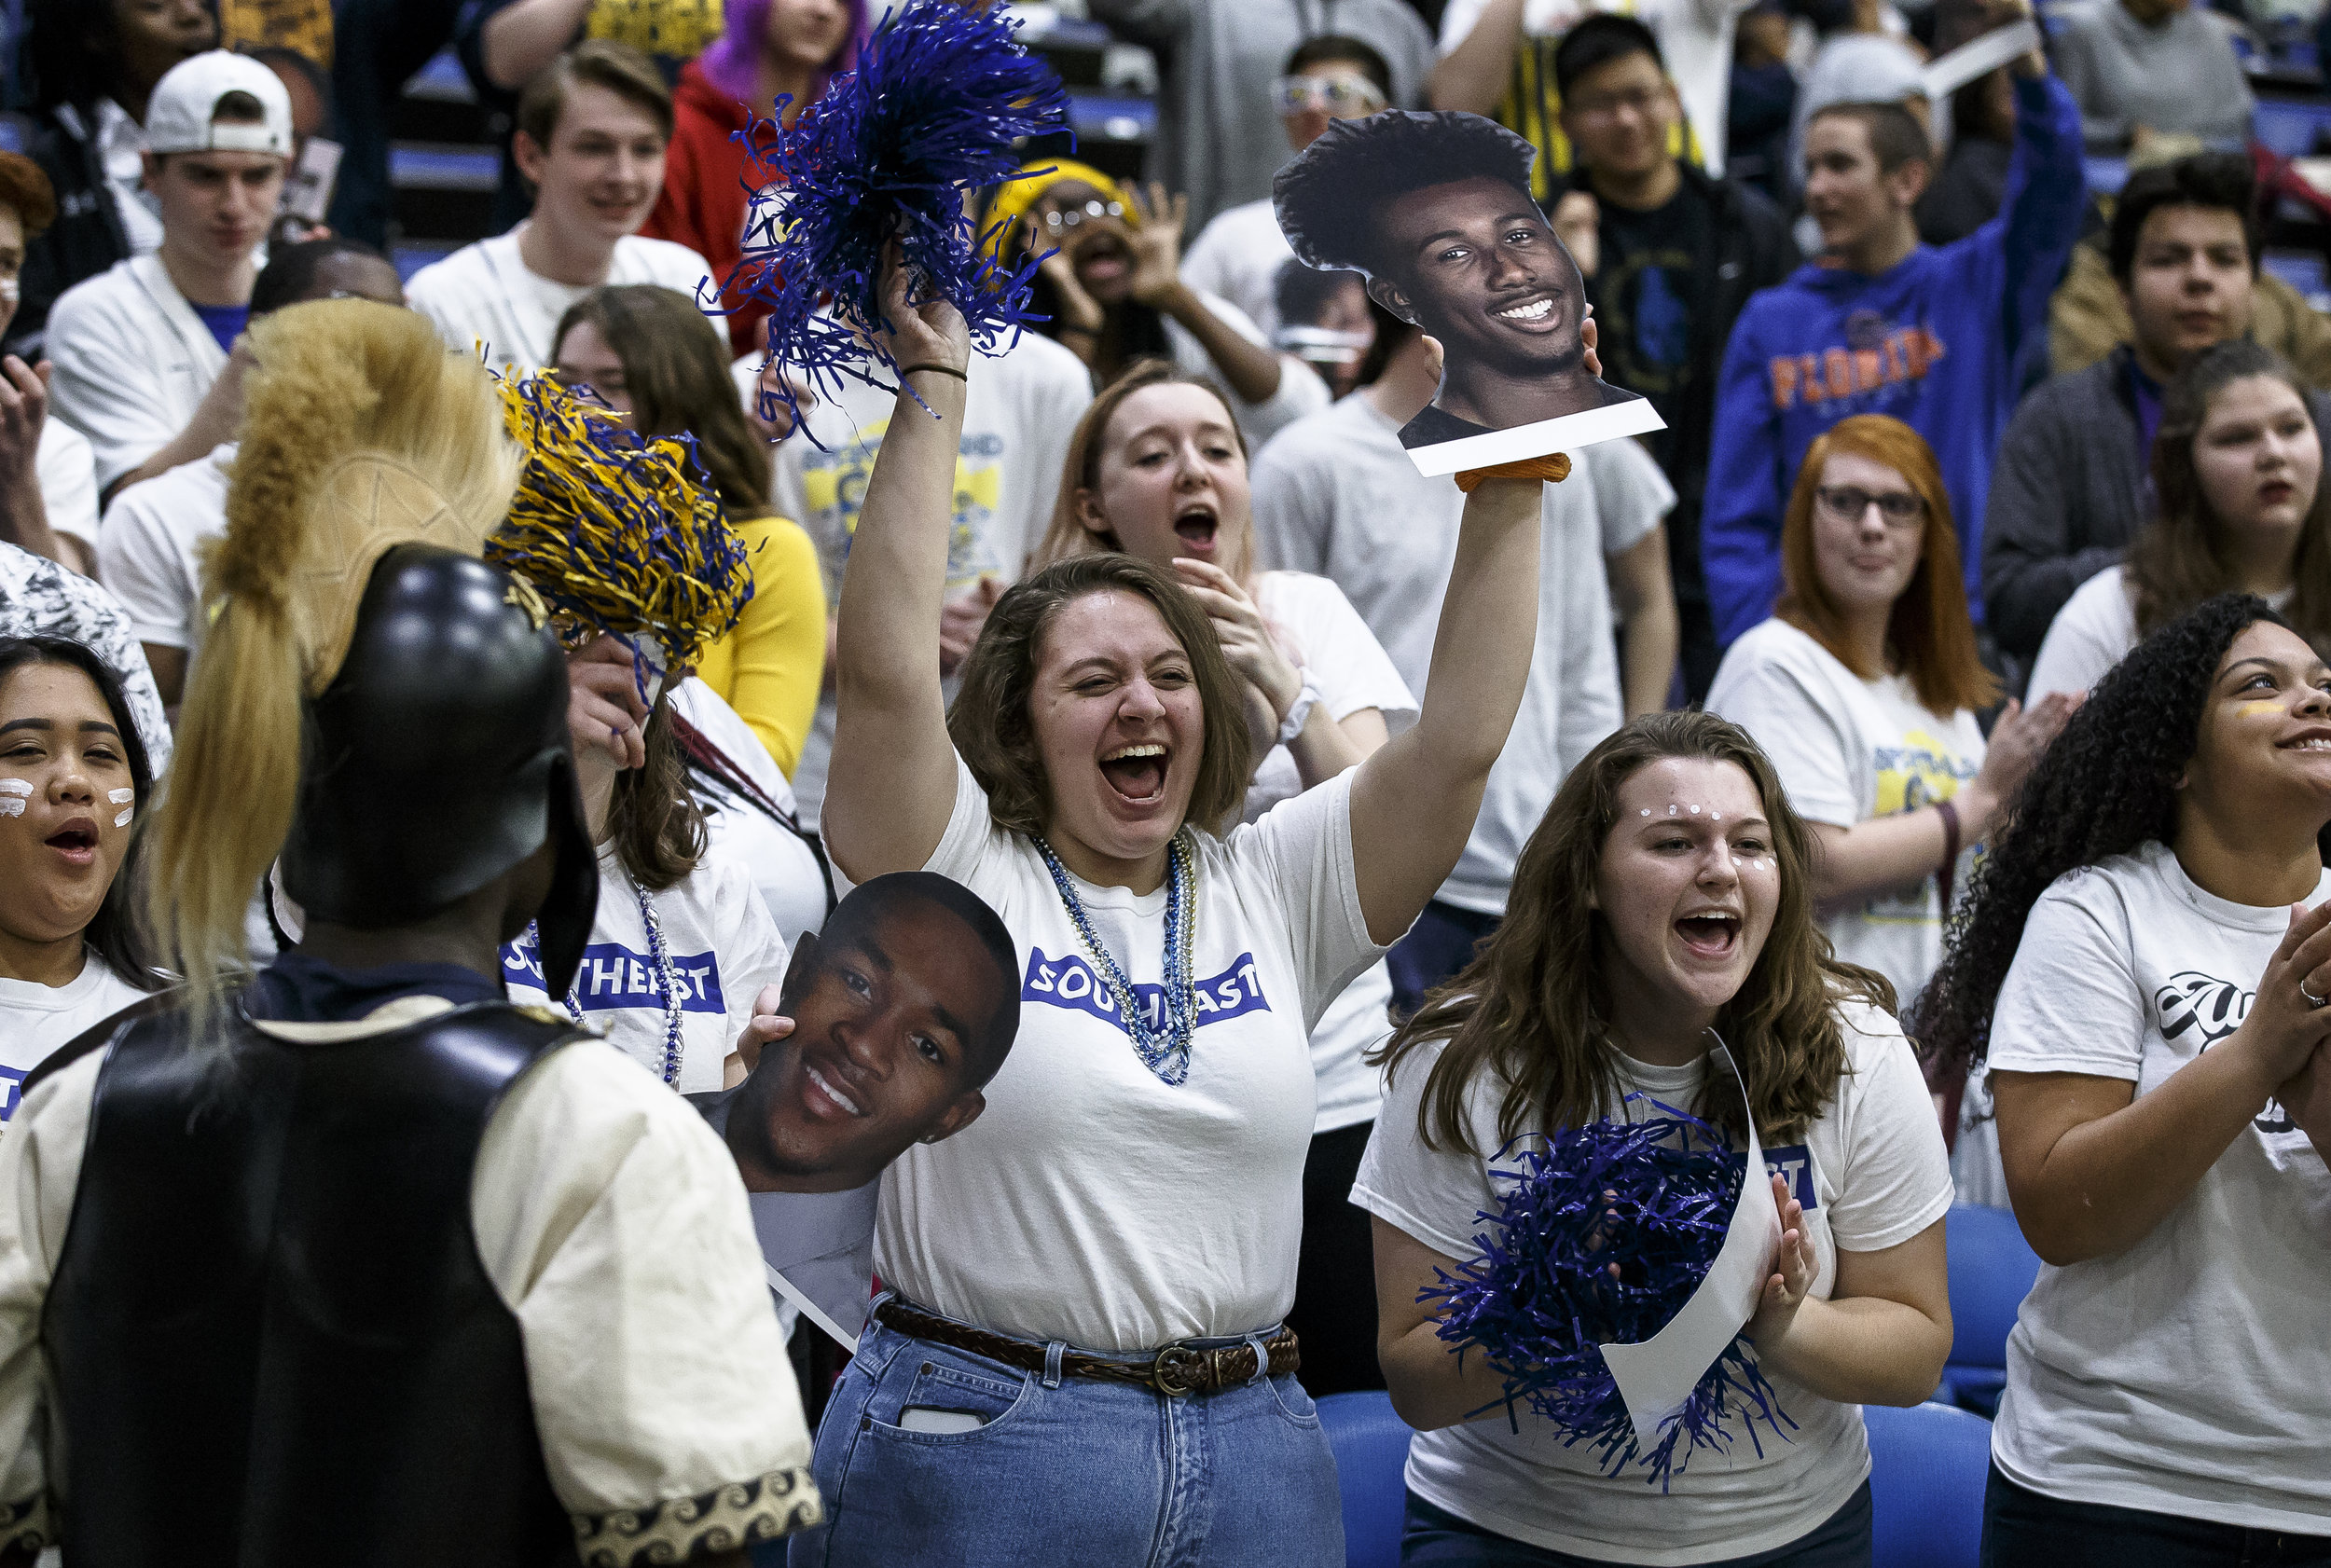 Southeast fans cheer on the Spartans as they take on Marion in the first half during the Class 3A Springfield Supersectional at the Bank of Springfield Center, Tuesday, March 13, 2018, in Springfield, Ill. [Justin L. Fowler/The State Journal-Register]